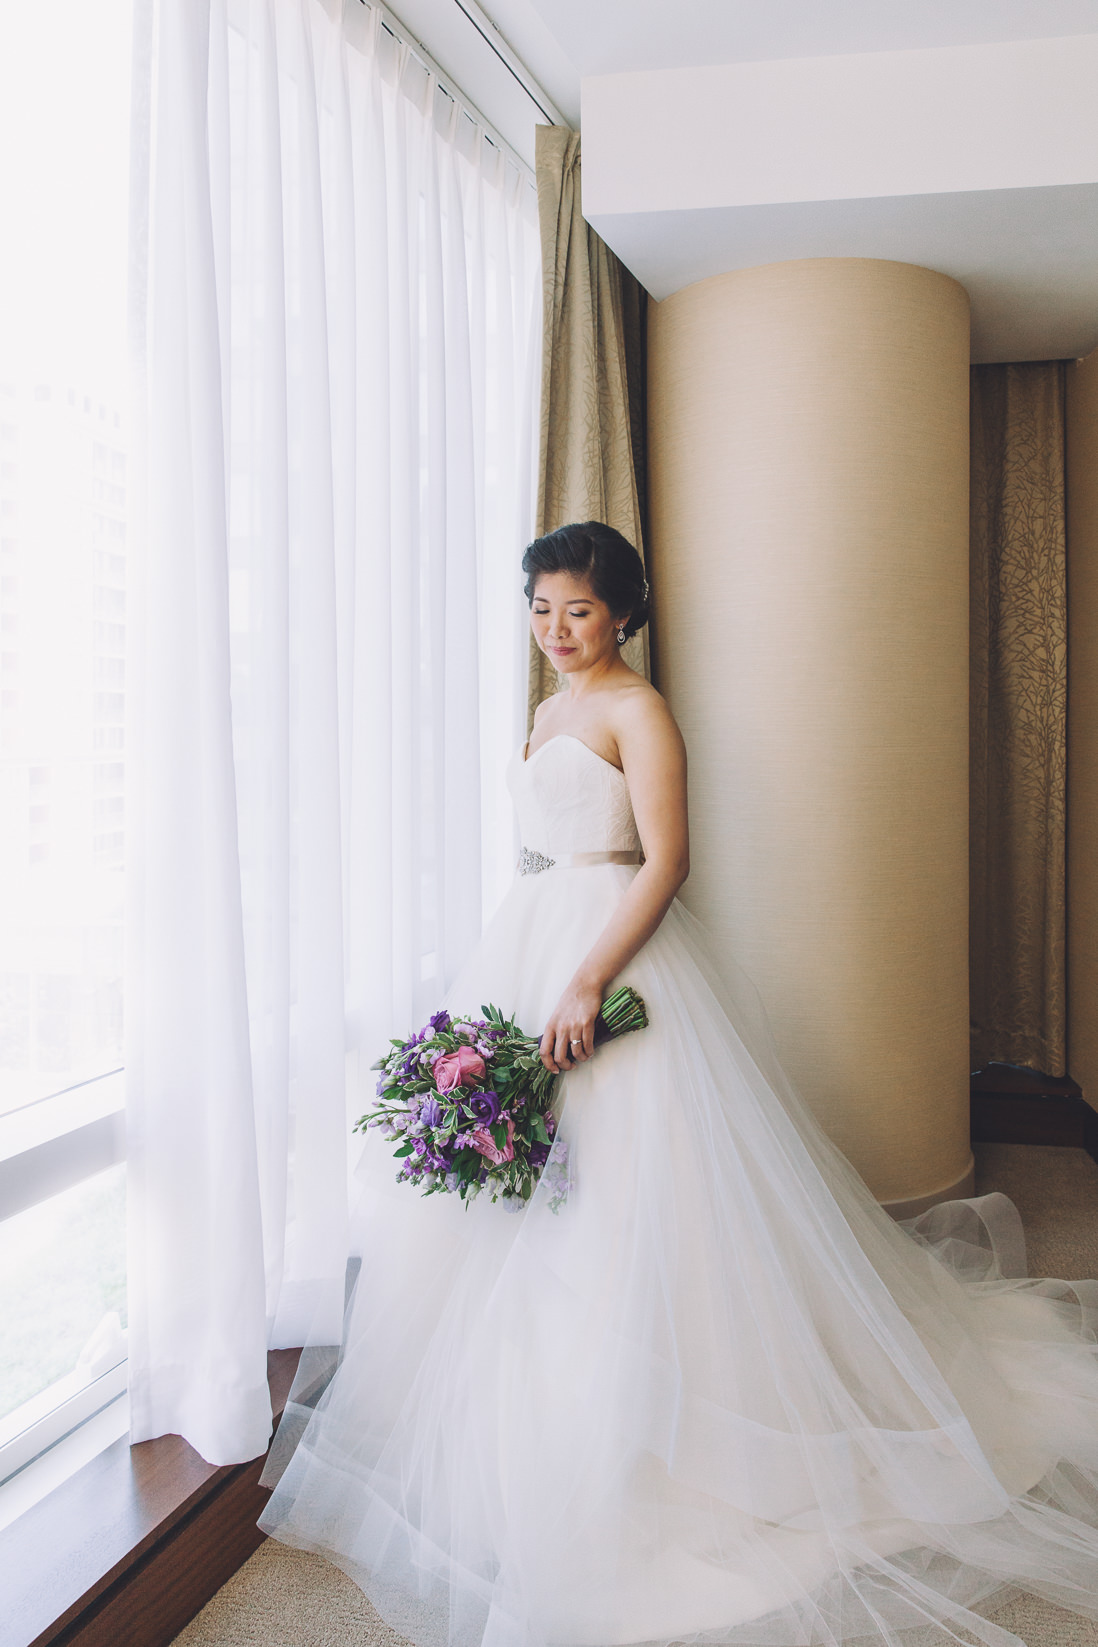 Bride's full length portrait | Arcadian Loft Wedding, Toronto | EIGHTYFIFTH STREET PHOTOGRAPHY